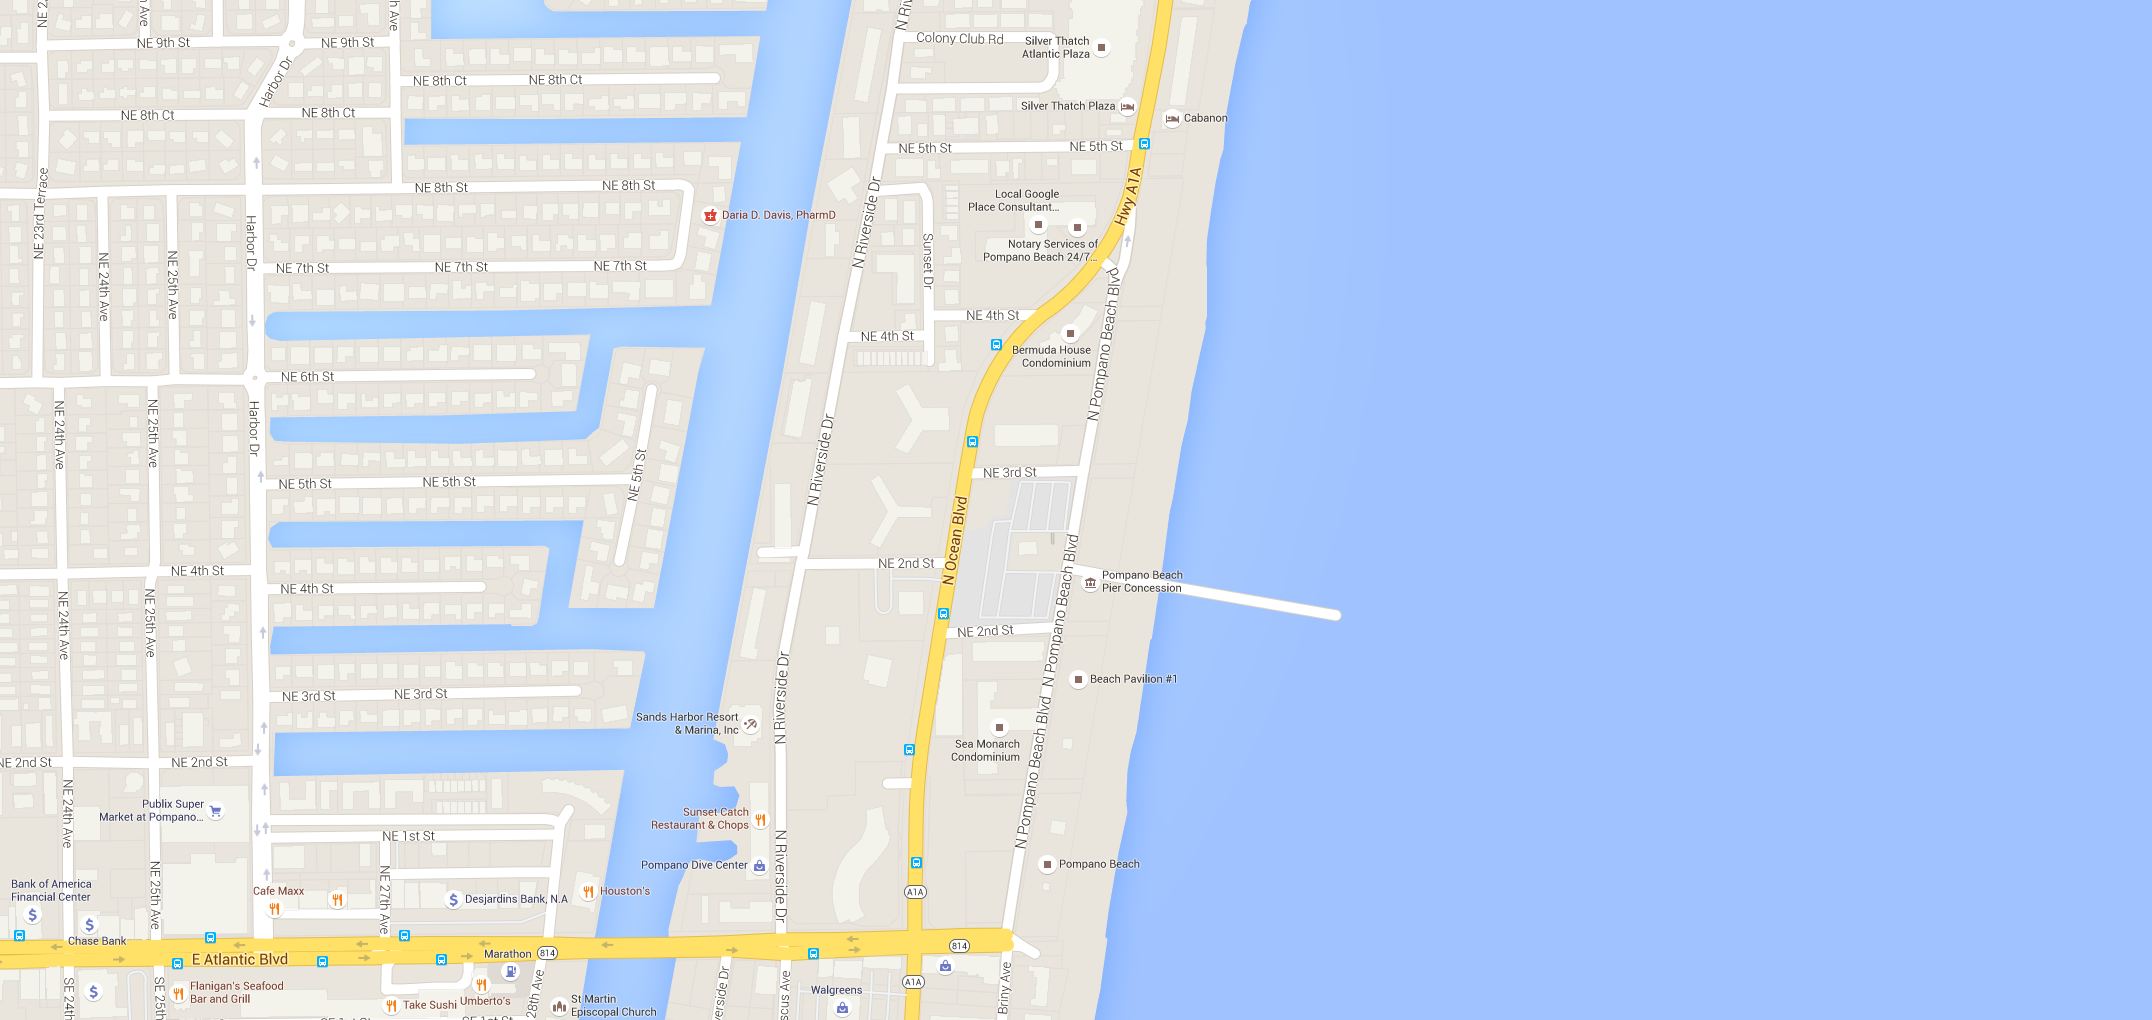 Mappng - Pompano beach map florida